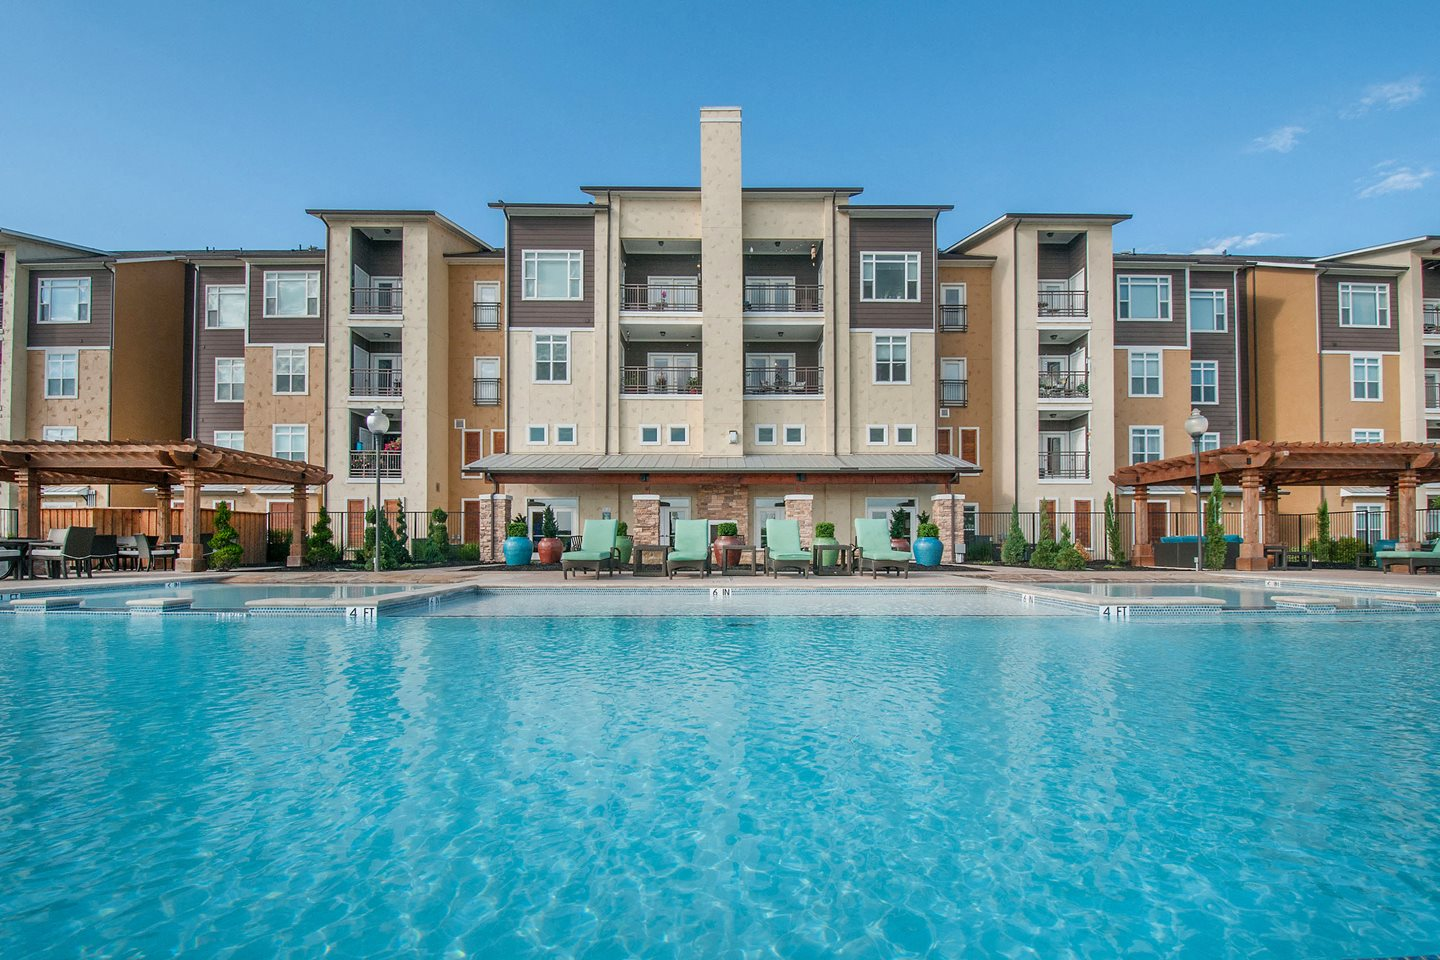 Pool view with apts building in background Waco, TX Apartments l Luxe at 1300